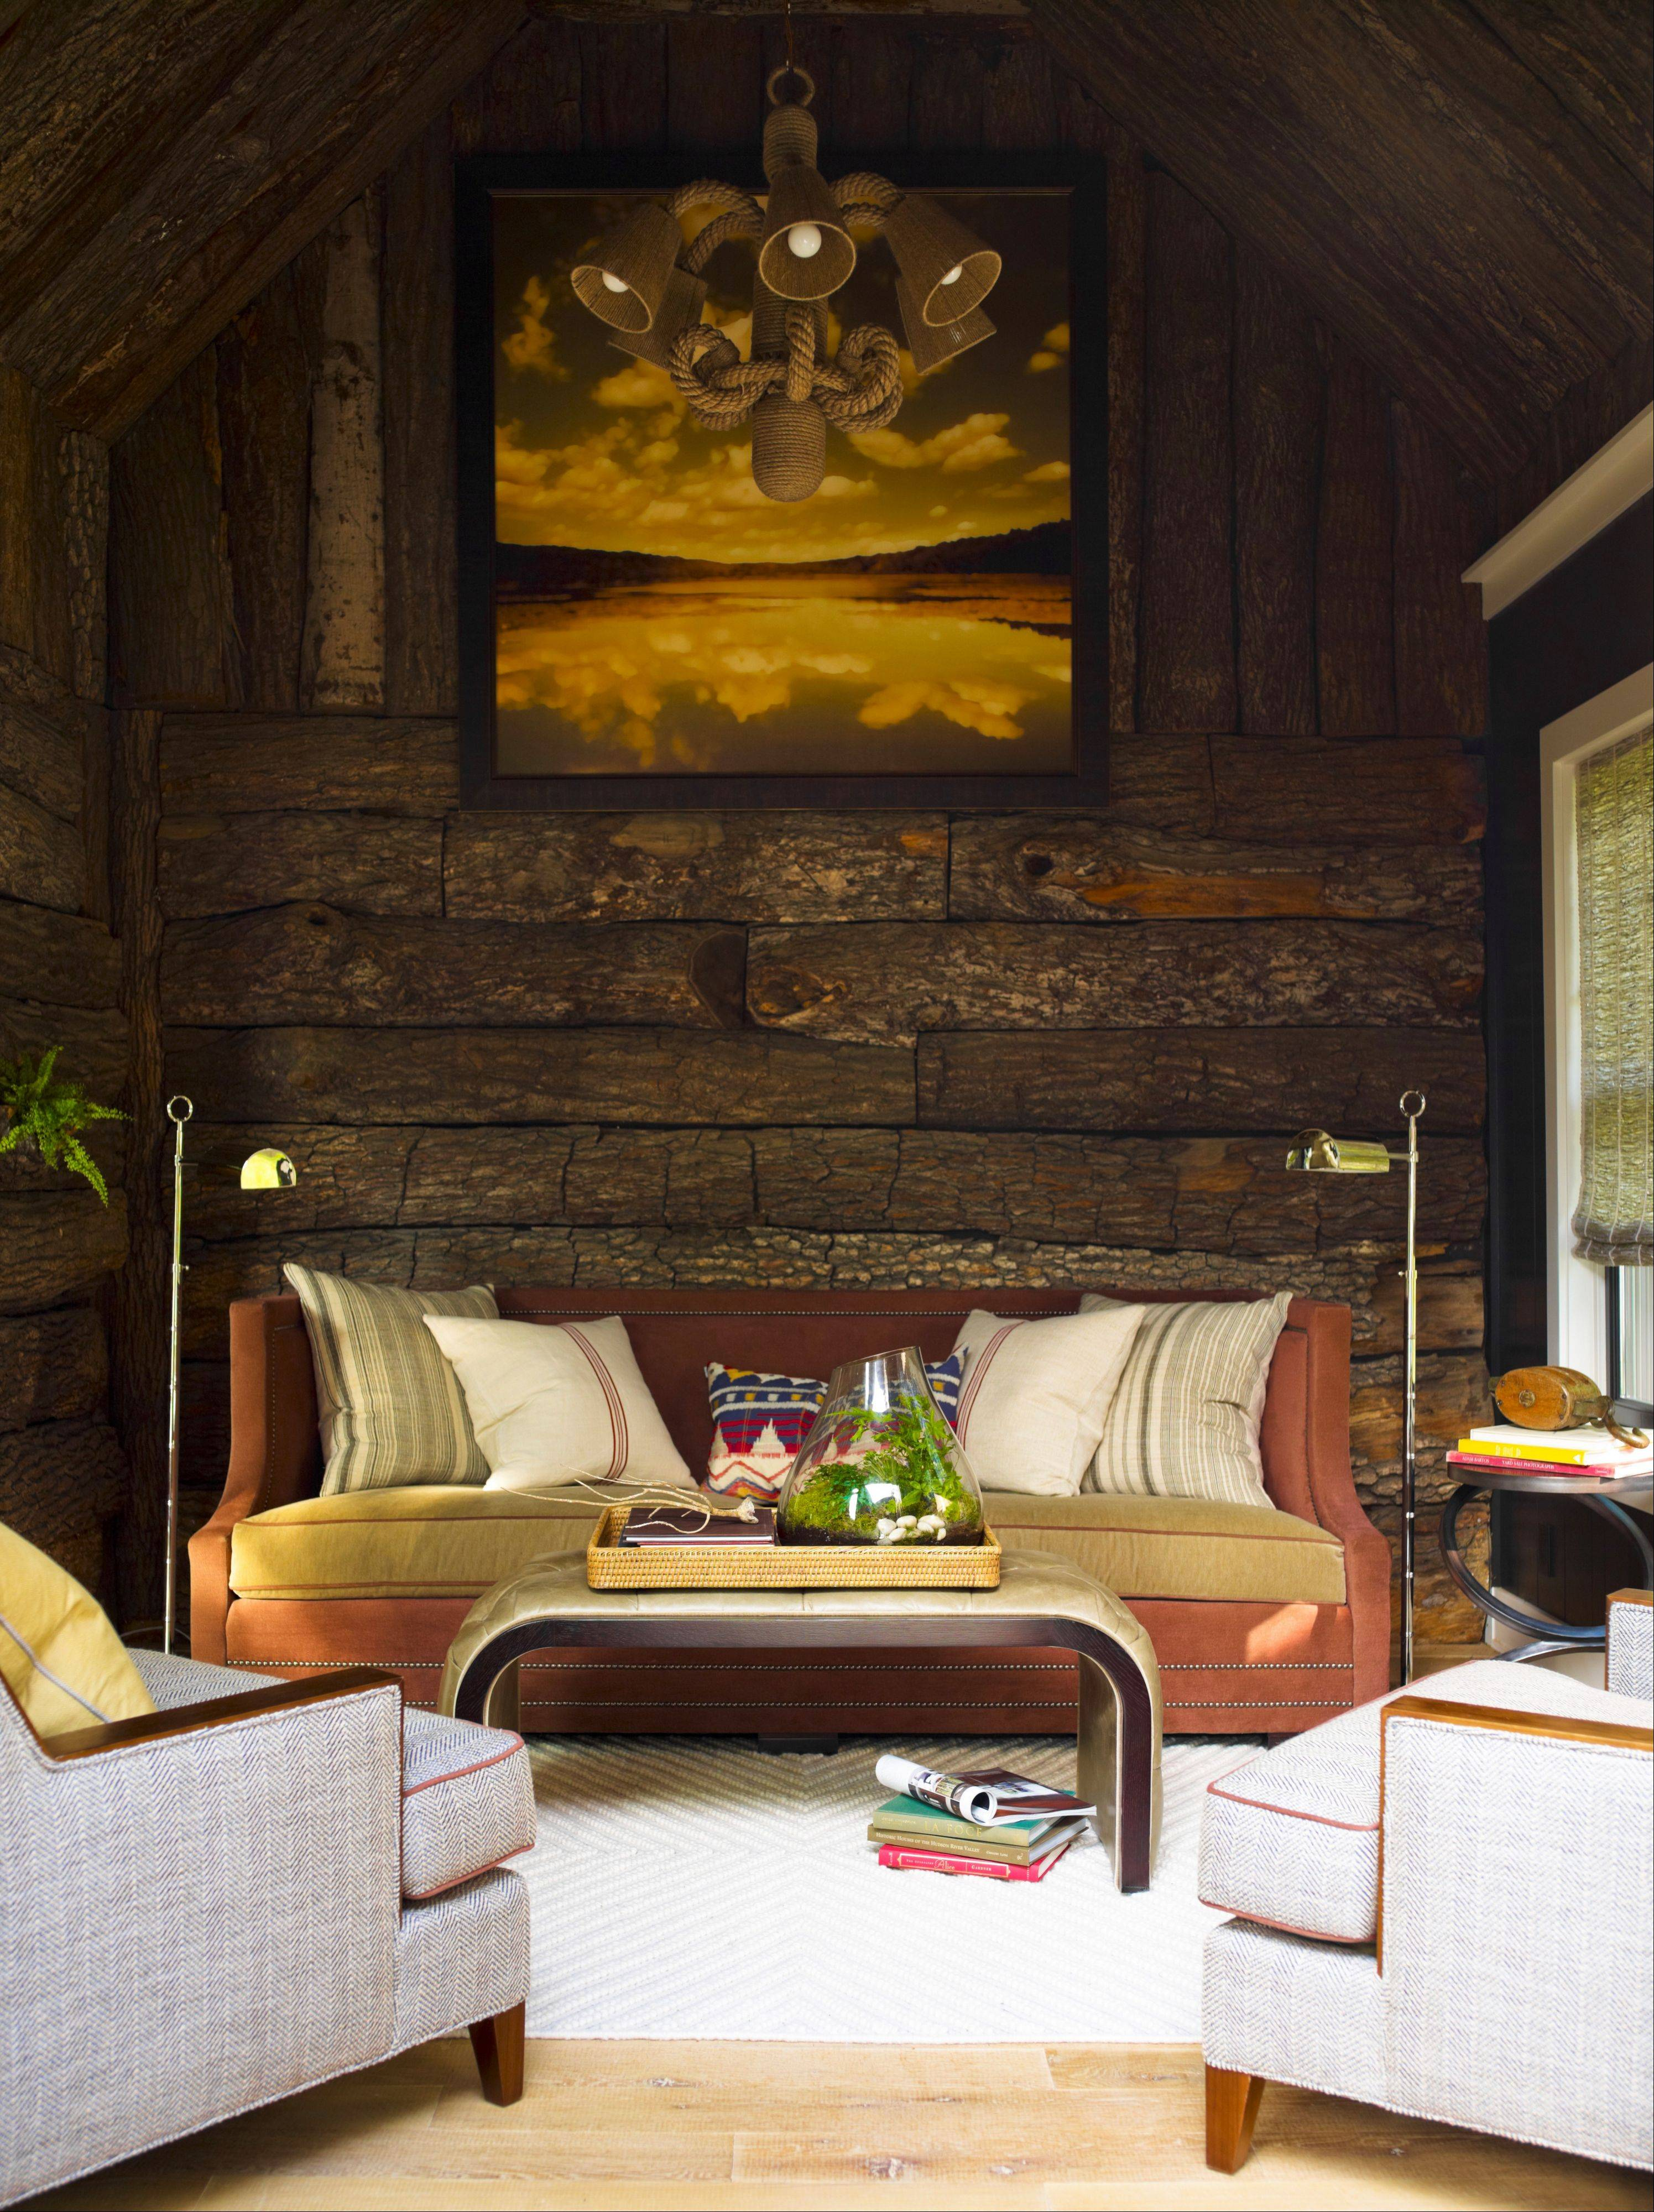 Thom Filicia muted colors in his sunroom so he could mix an earthy red, pale green and quiet mustard.